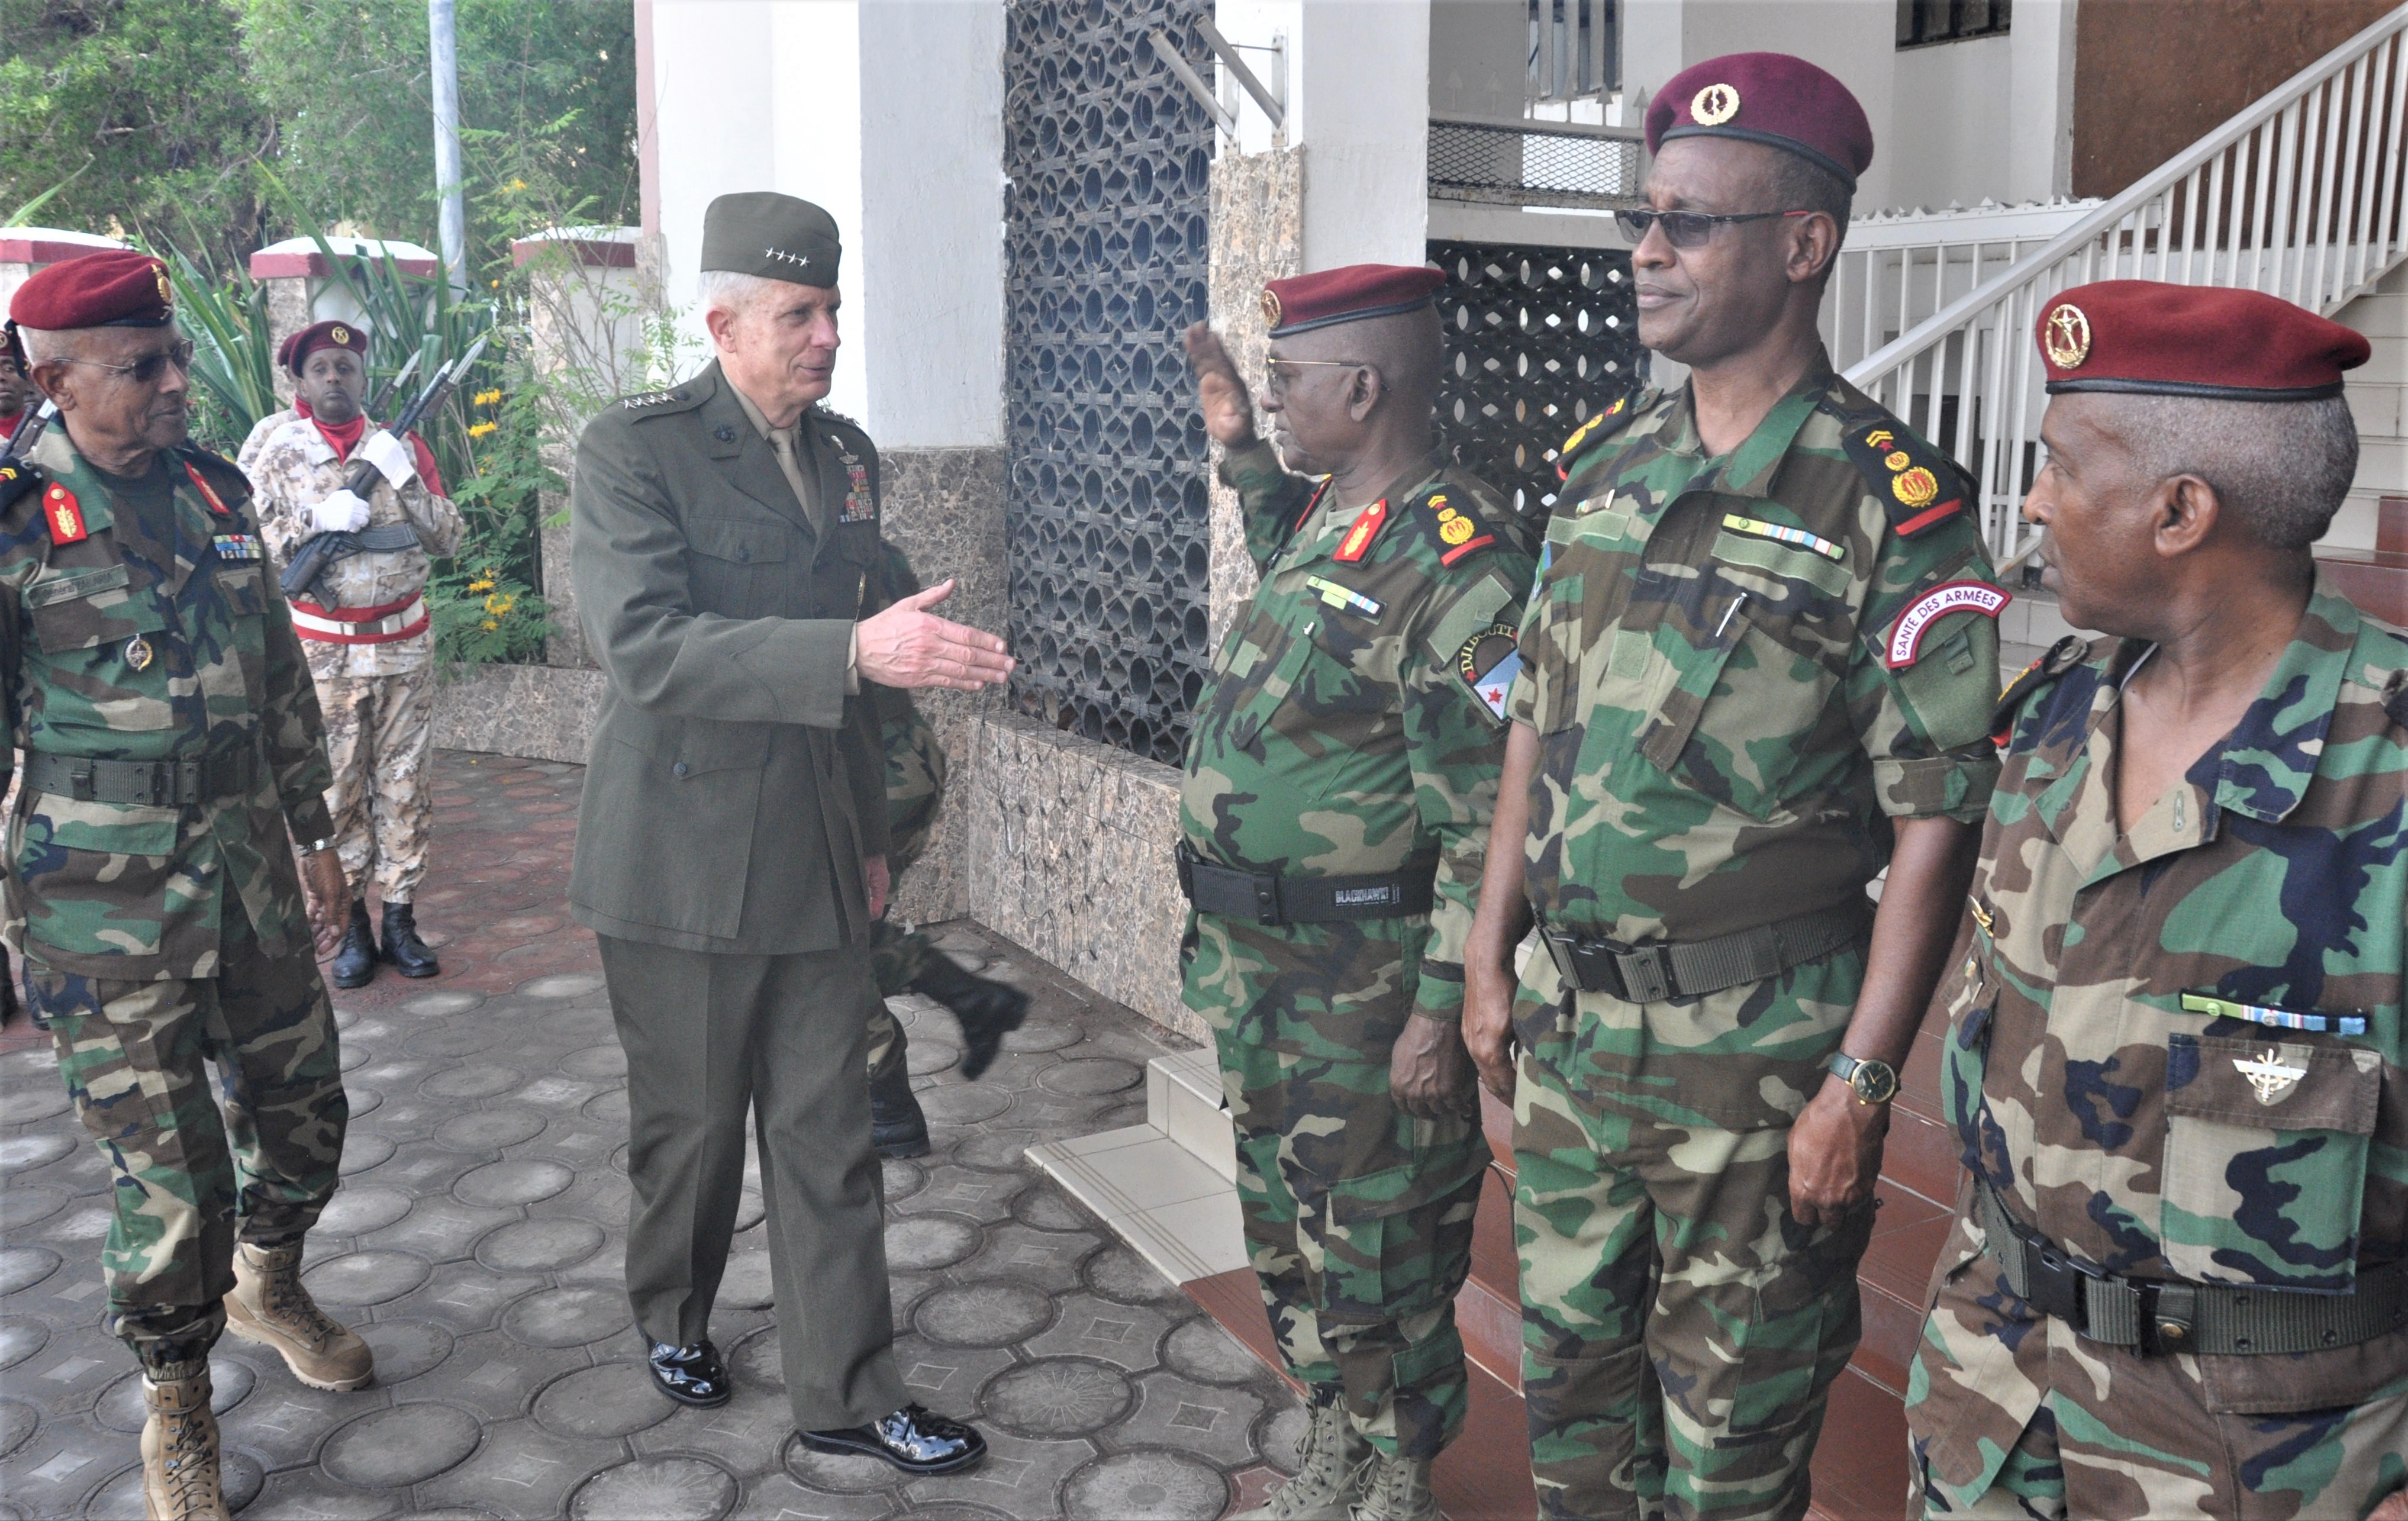 DJIBOUTI CITY, Djibouti—During a four-day trip to East Africa, Gen. Thomas D. Waldhauser, commander of United States Africa Command (AFRICOM), greets members of the Djiboutian armed forces prior to a meeting with Chief of Defense Gen. Zakaria Cheikh Ibrahim on Nov. 29, 2018, Djibouti City, Djibouti.  Strategically located in the Horn of Africa, Djibouti is a key U.S. partner on security, regional stability, and humanitarian efforts across the region.  